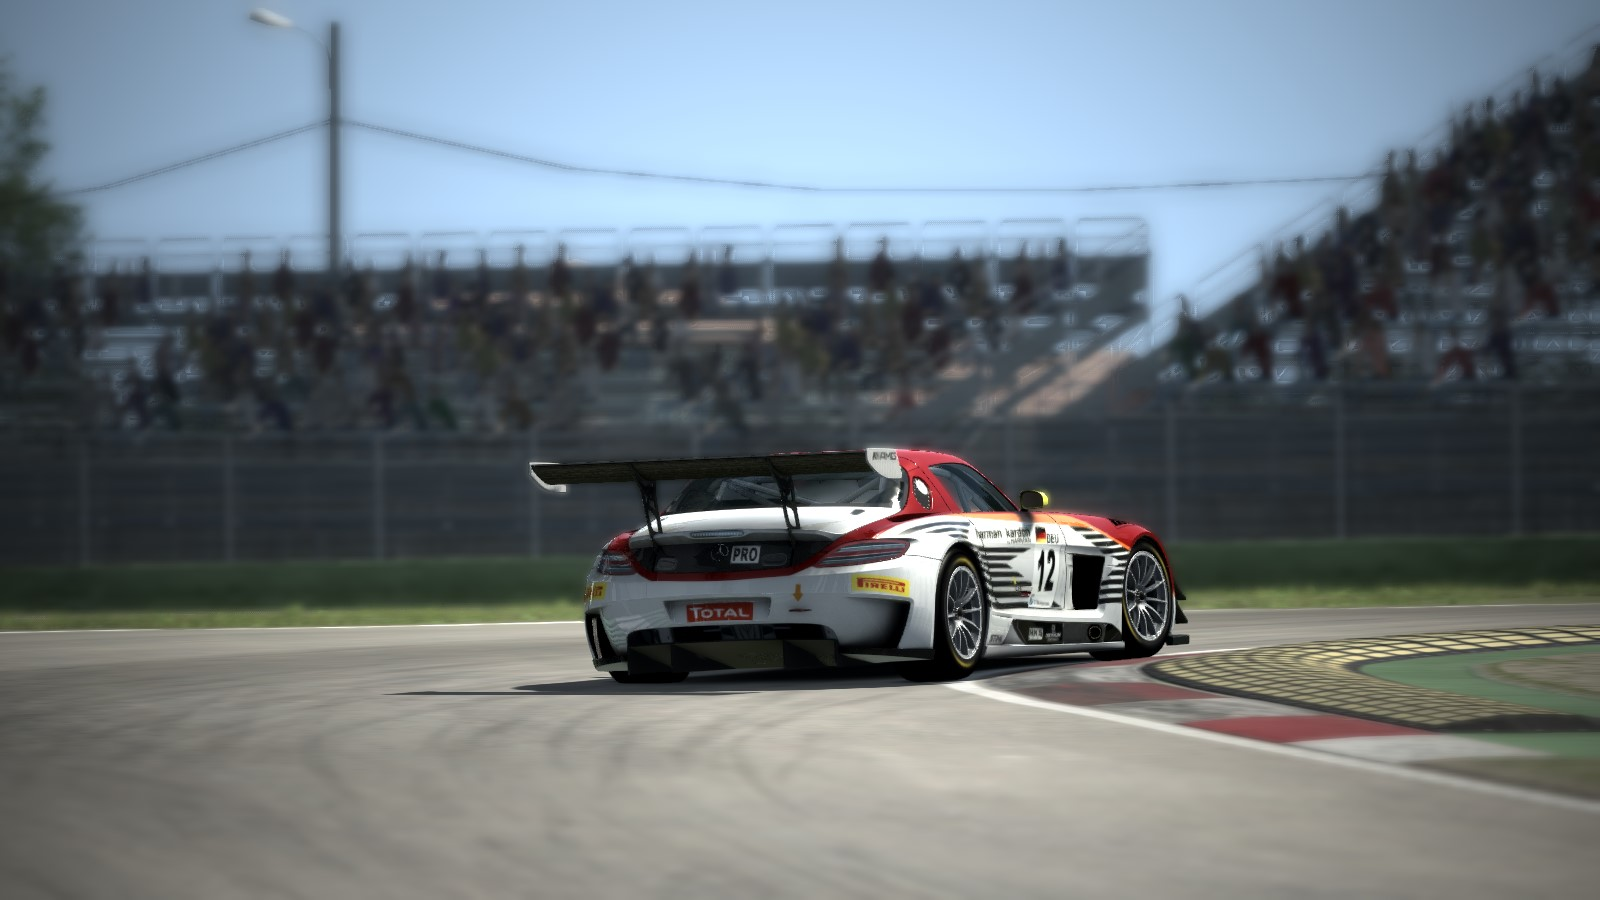 Screenshot_mercedes_sls_gt3_imola_24-4-115-17-29-33.jpg